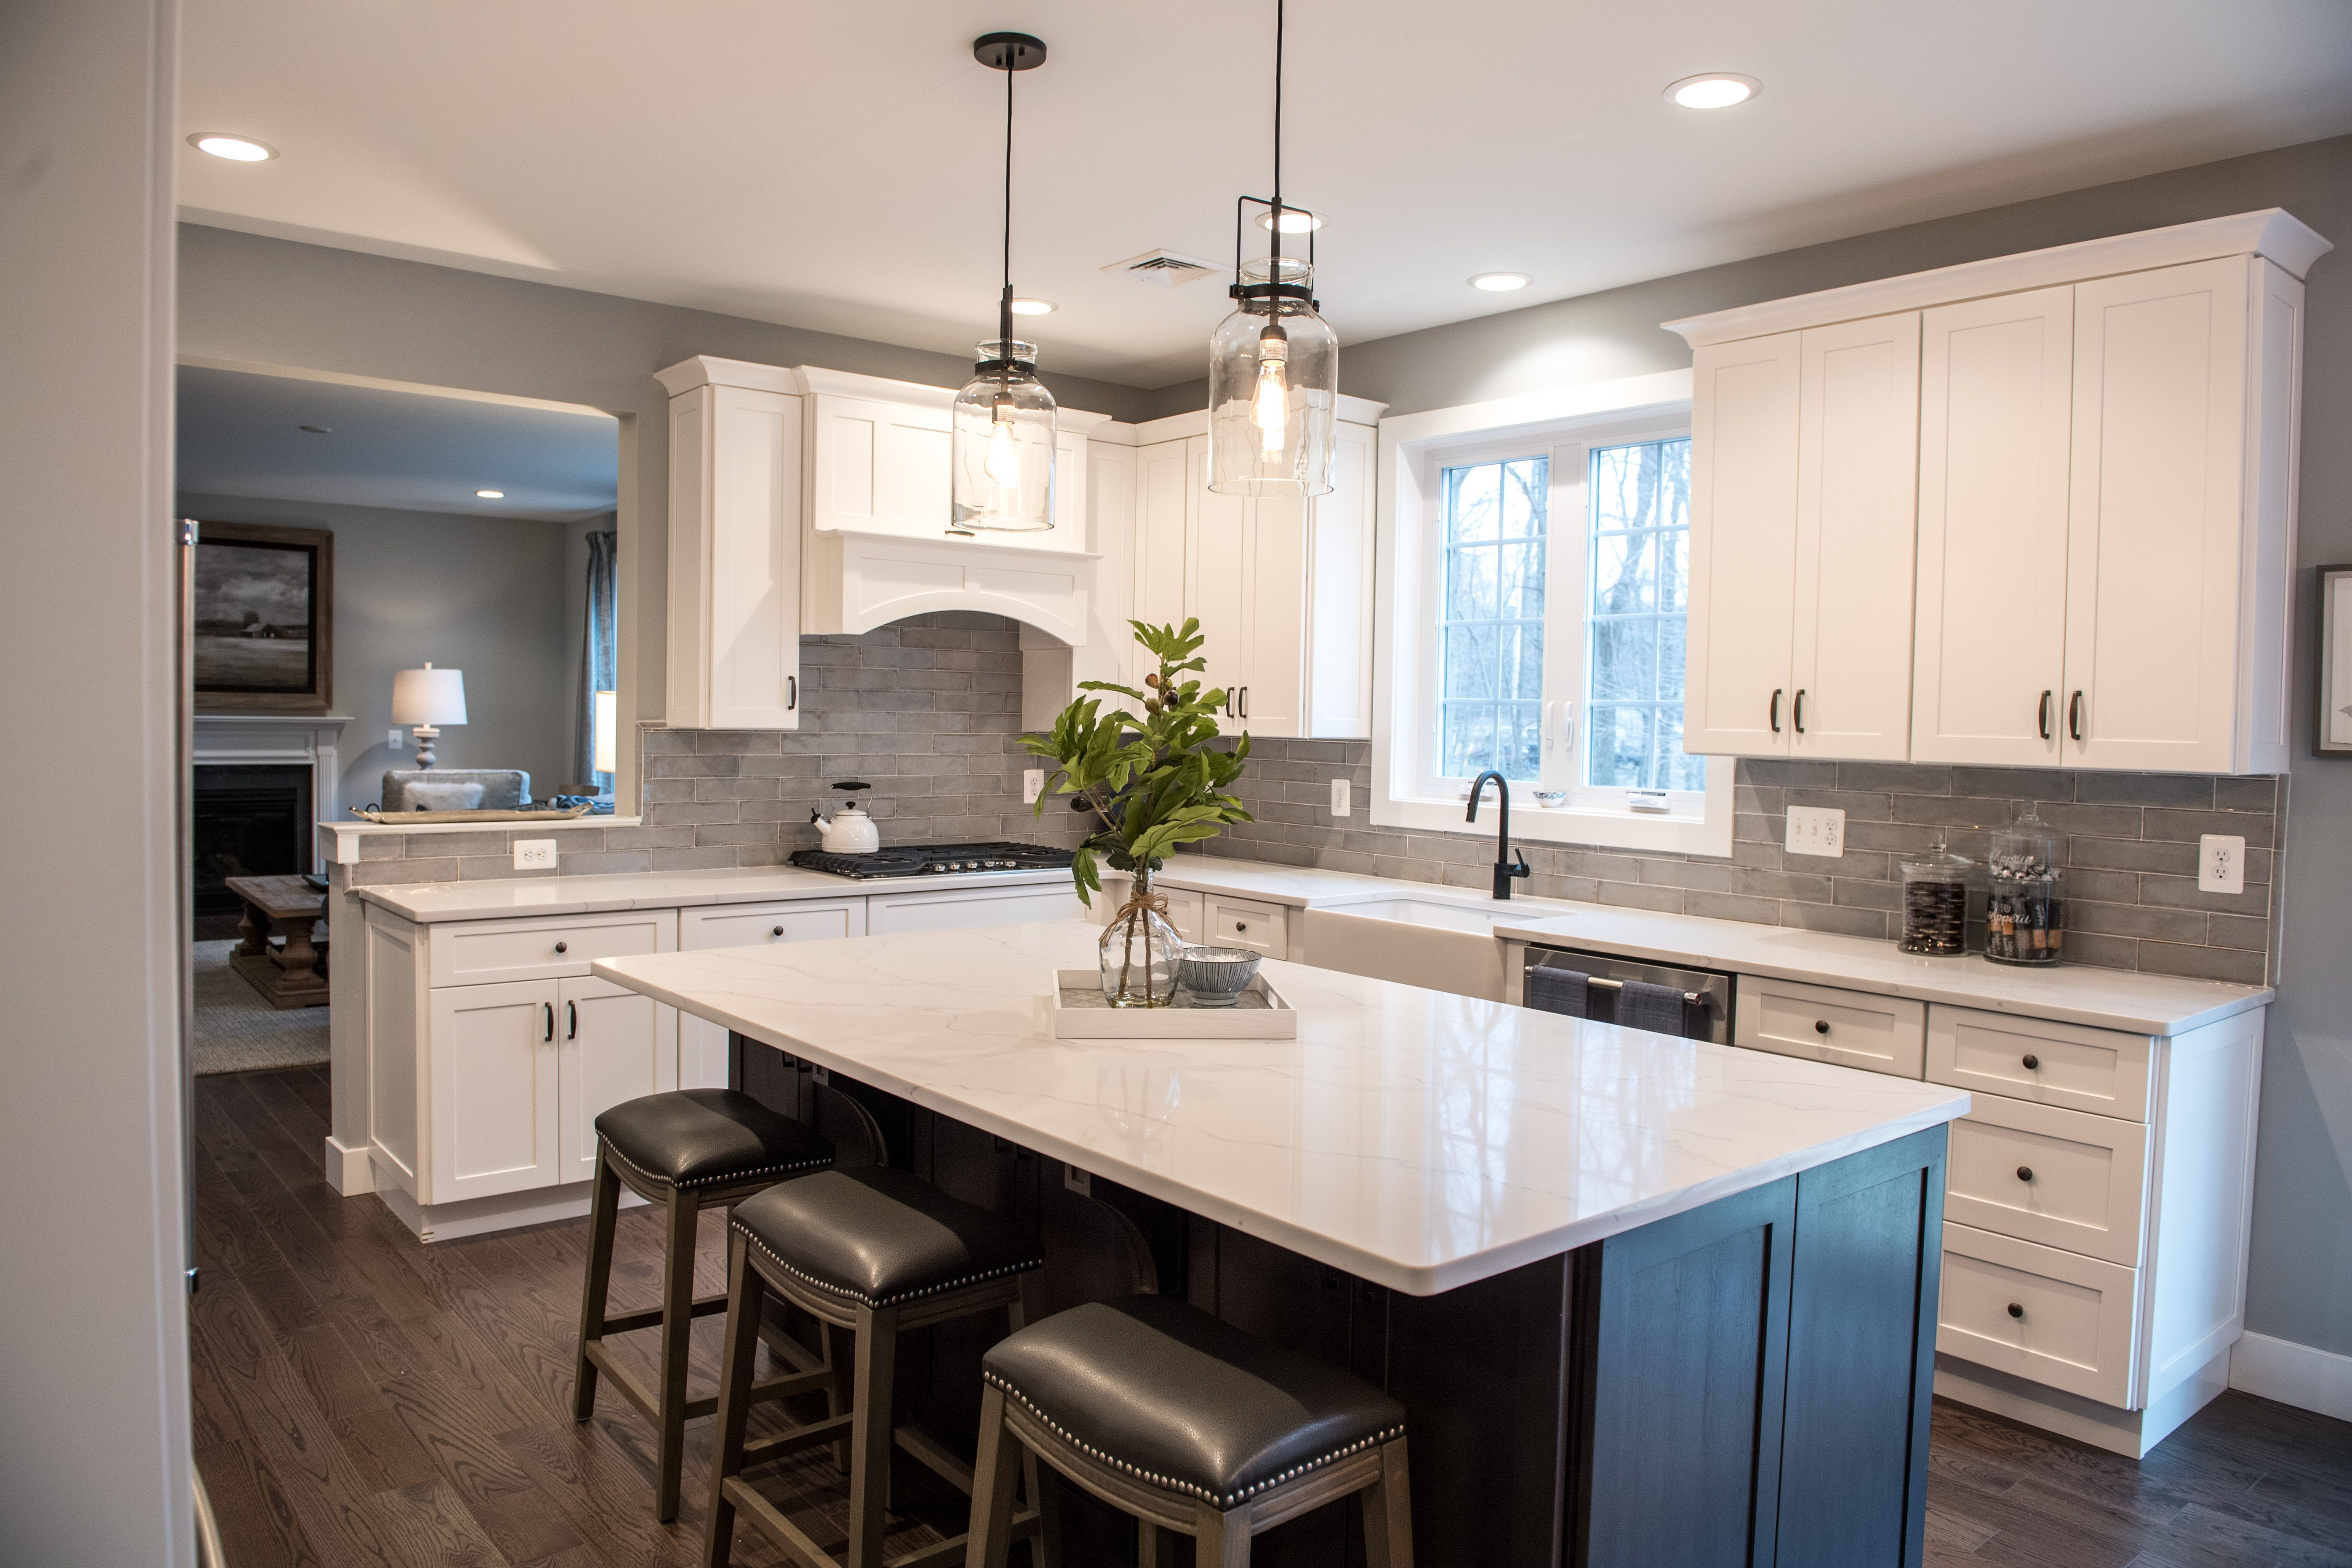 Holly Volpe Interior Design Howell Kitchen Kitchen Interiordesign Interiordesigner Kitcheninspiration Kitchen Design Kitchen Projects Space Interiors